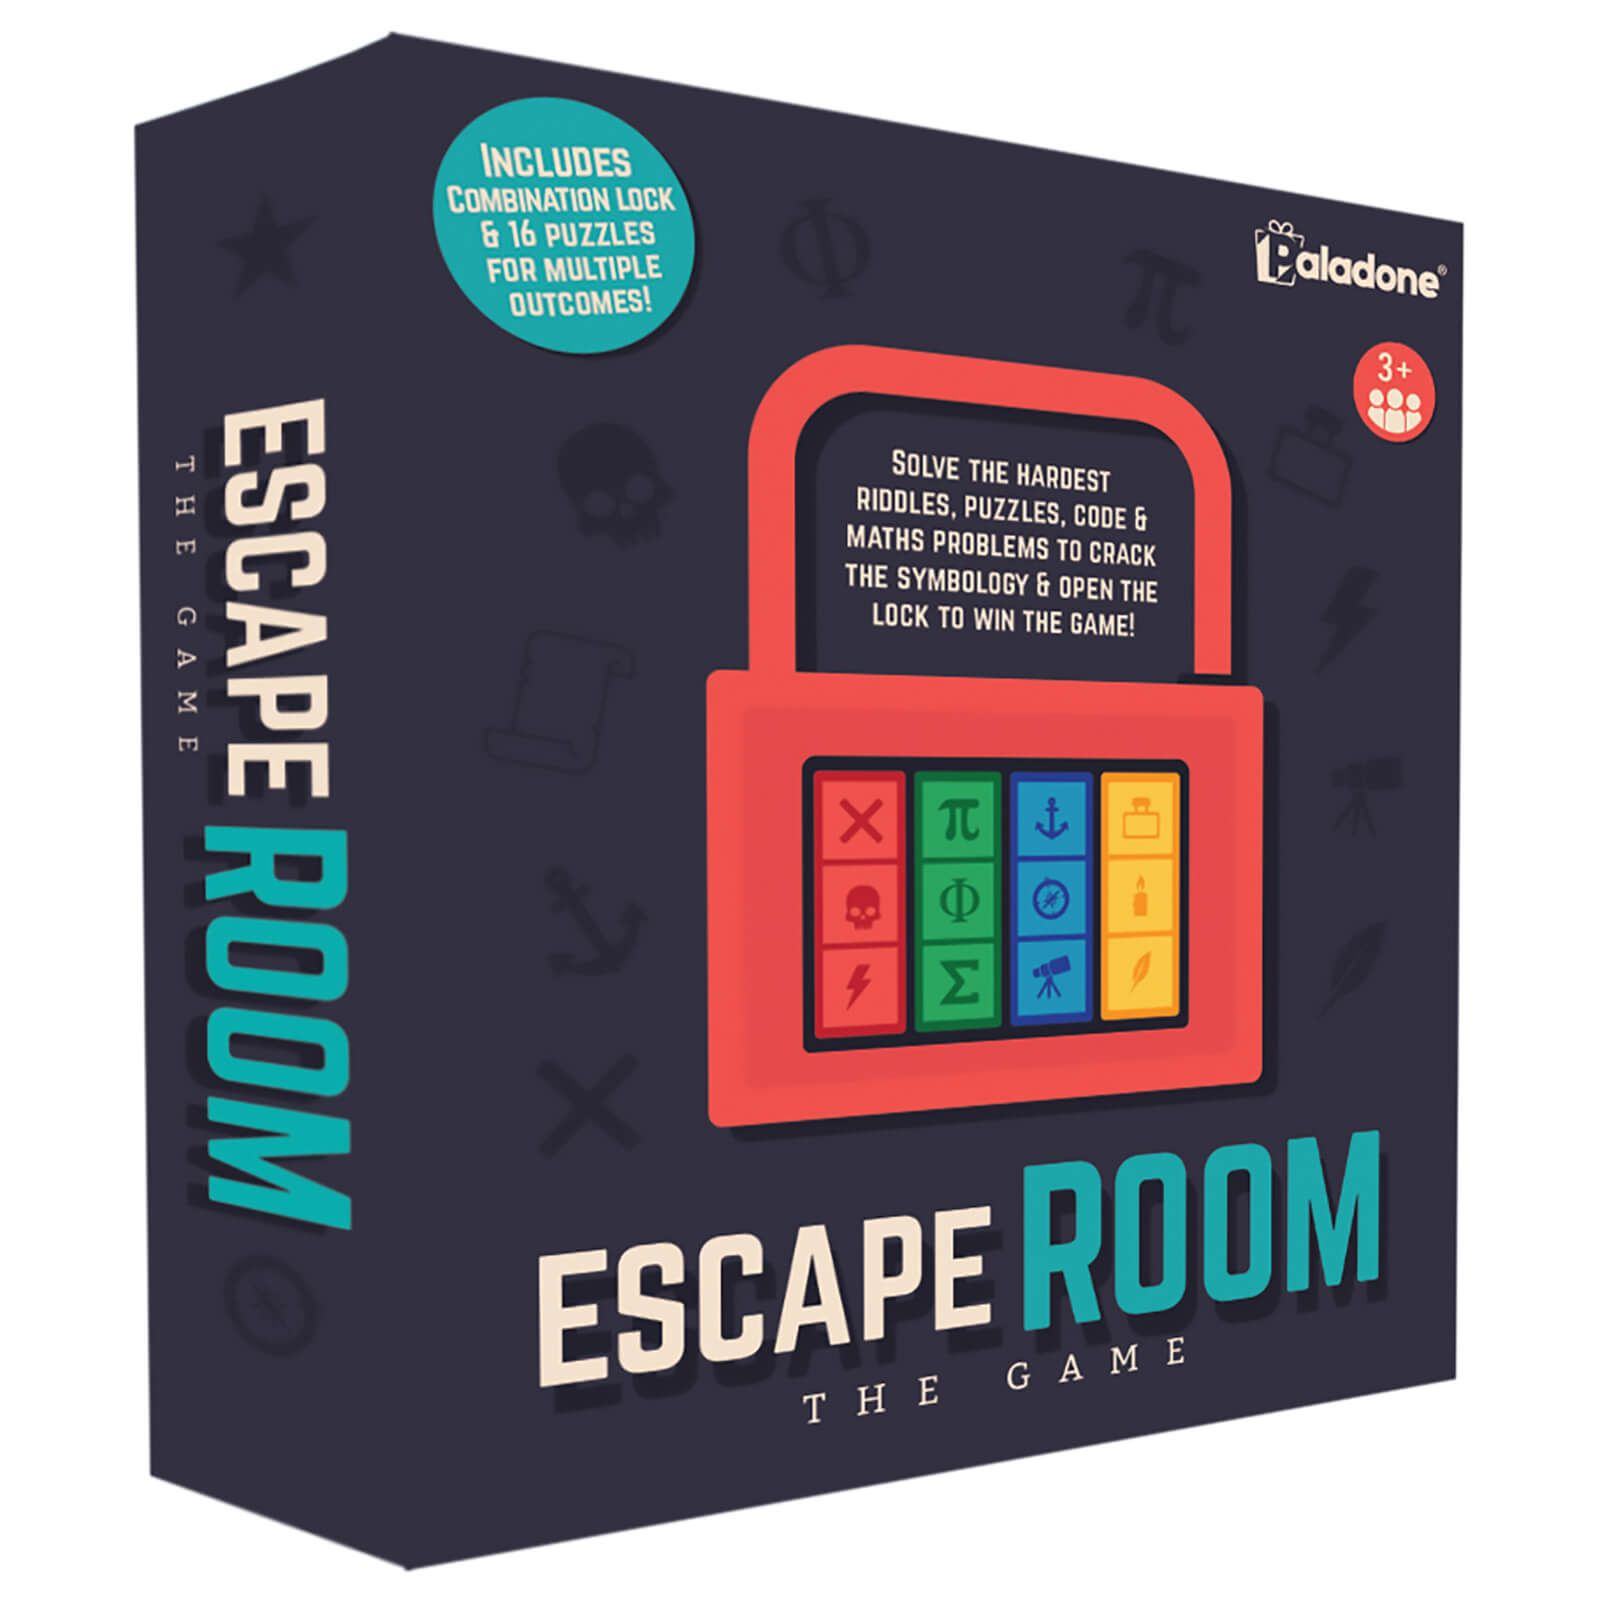 Escape Room Game Birthday Gifts For Boyfriend Escape Room Diy Gifts For Boyfriend